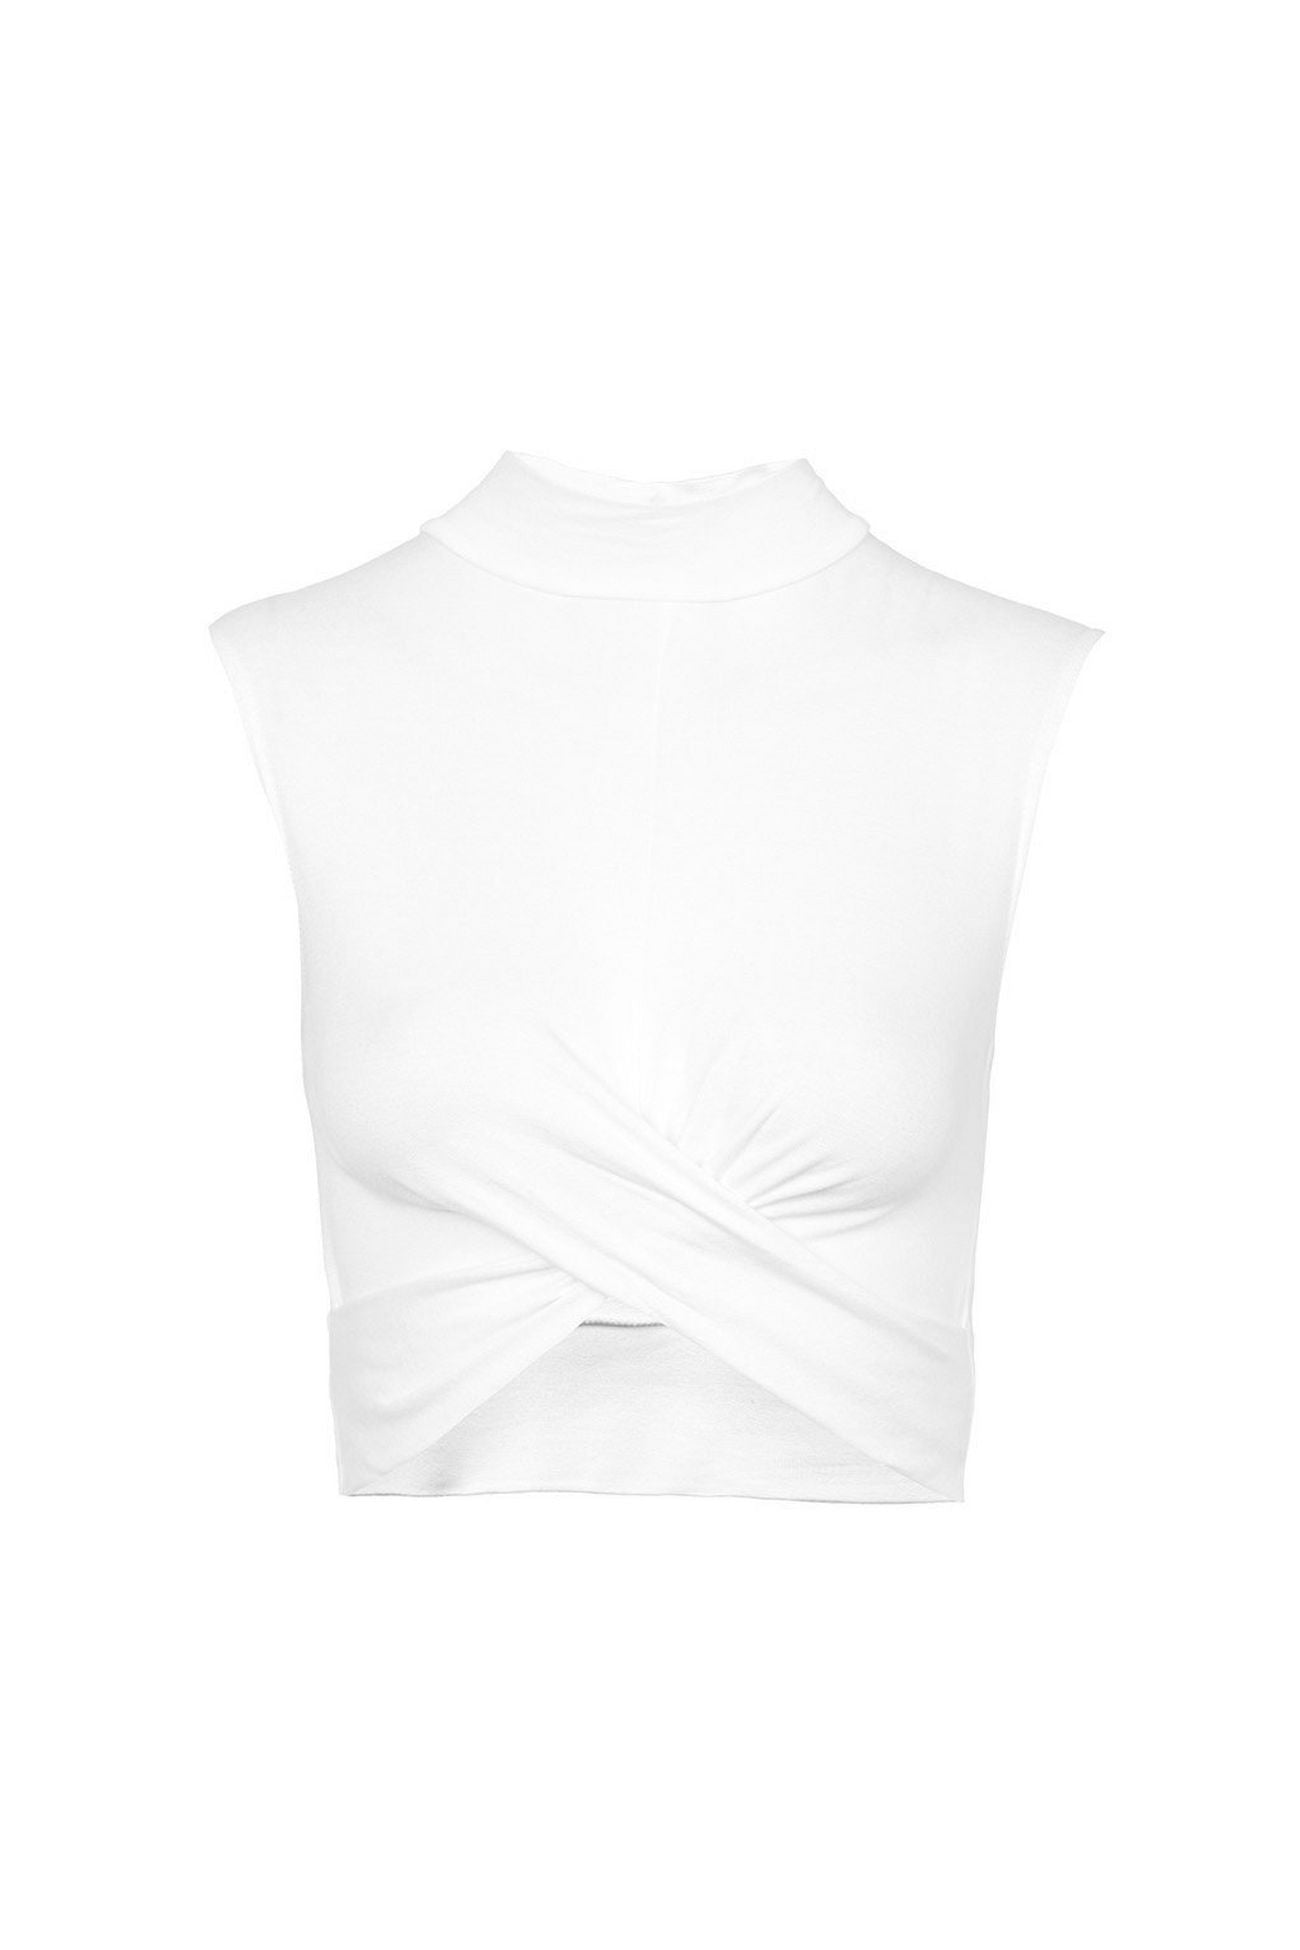 Topshop Womens White Twist Front Crop Top - Stockpoint Apparel Outlet